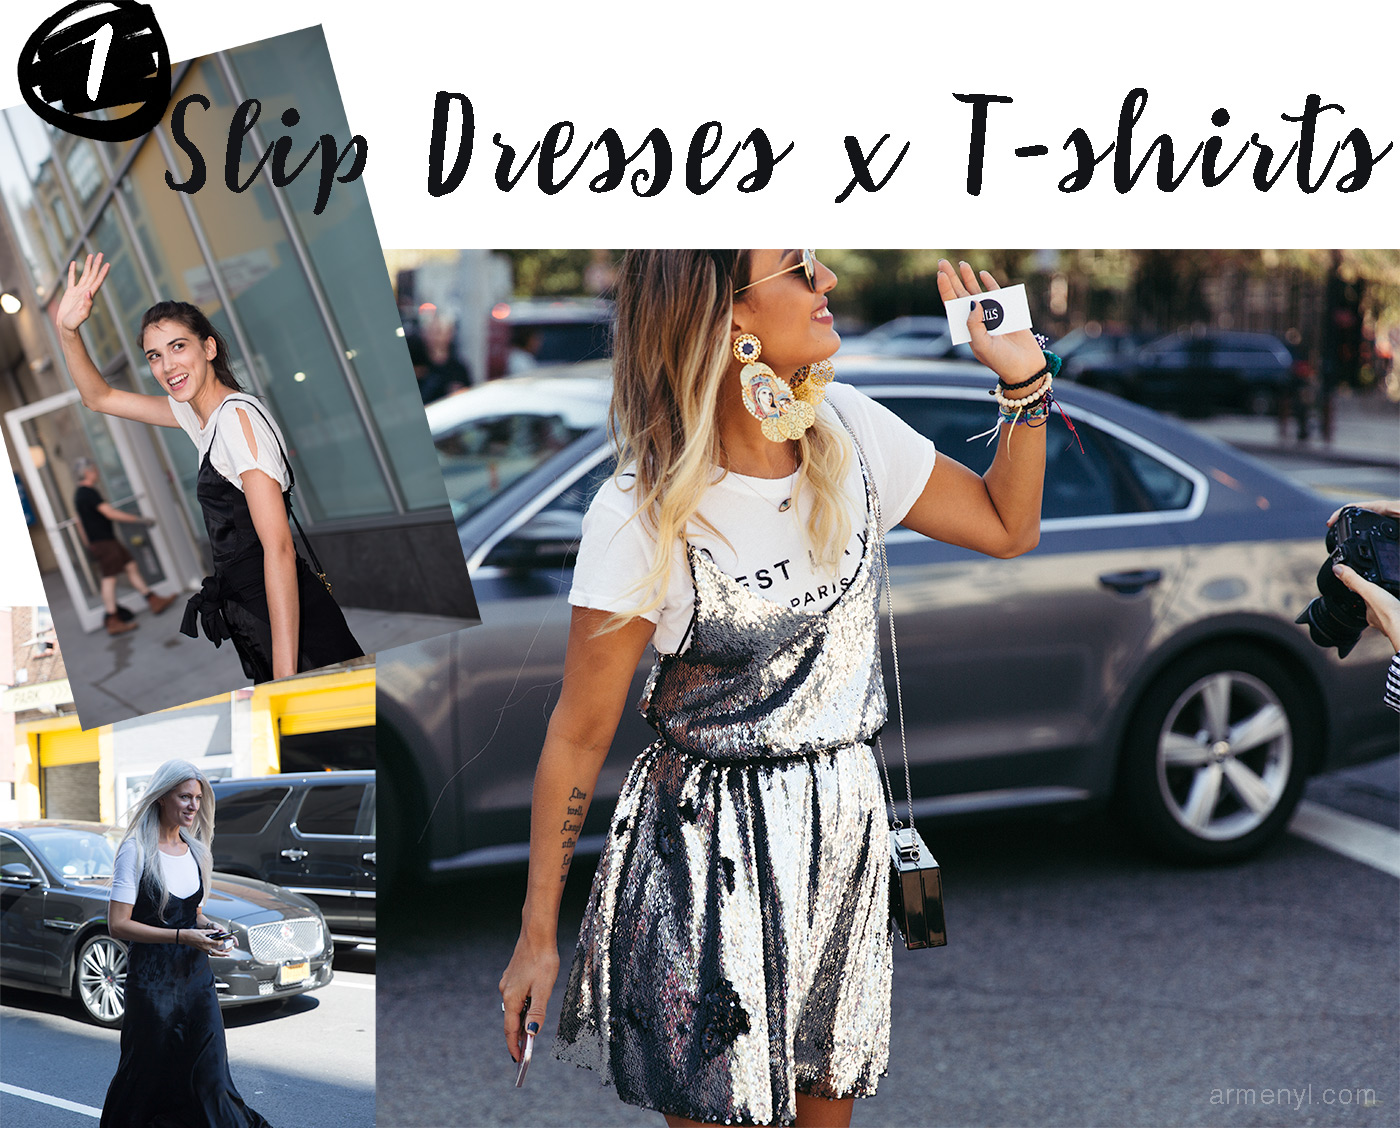 Style Report Fashion Week trends 2016 Slip dresses and T shirts